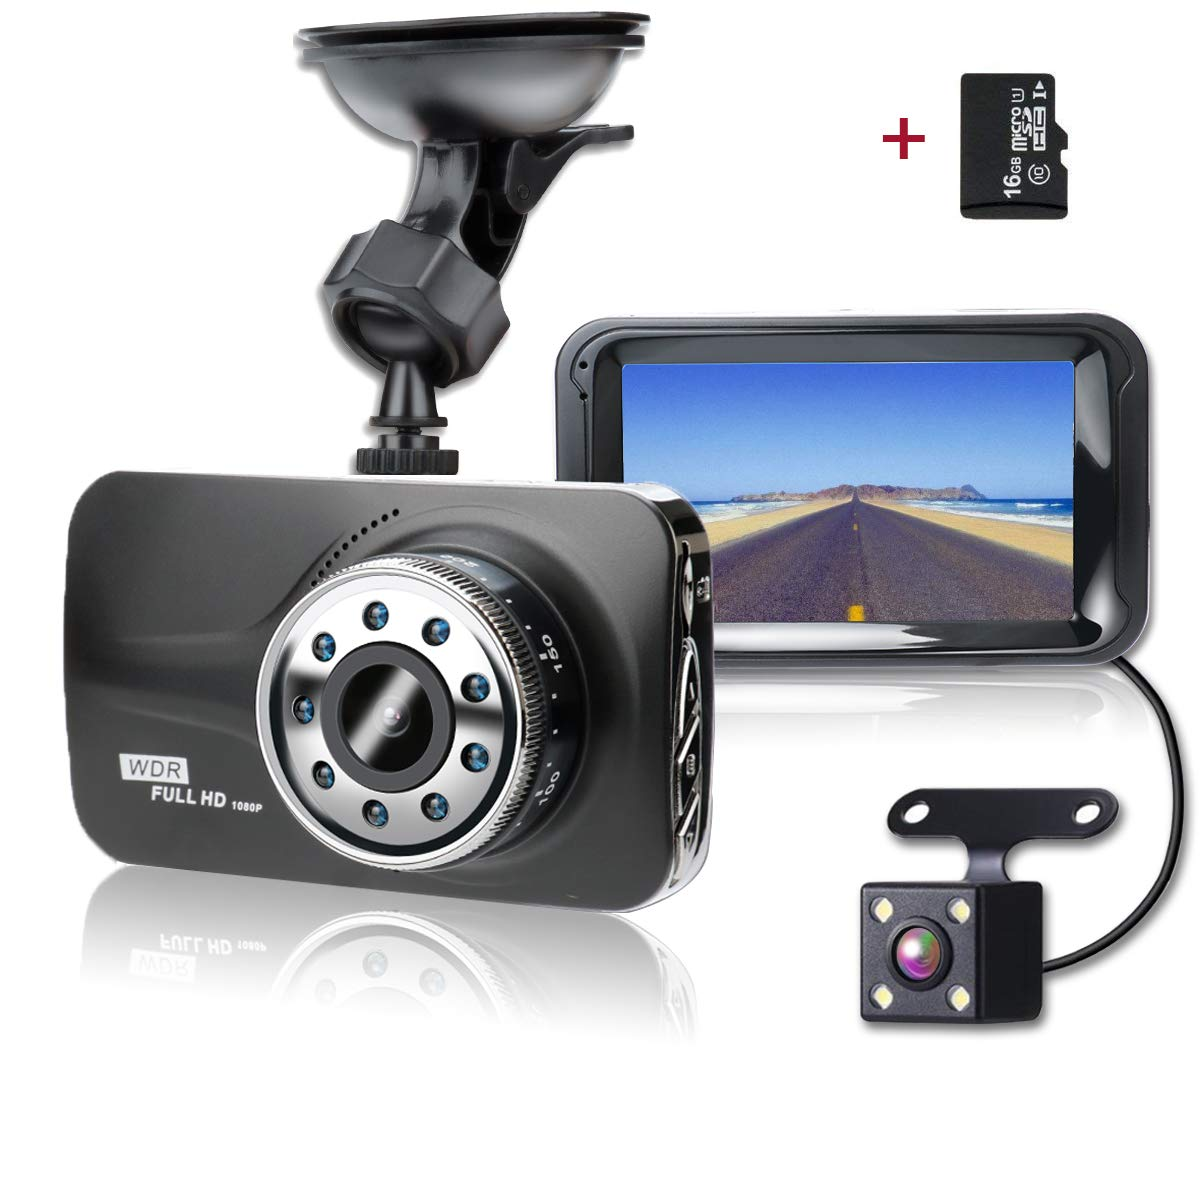 SHISHUO Dash Cam Front and Rear - 1080P 3' LCD Screen Vehicle Dual Recording Cameras with 16GB Micro SD Card, Built In G-Sensor, Motion Detection, IR Light, Parking Monitoring, Reversing Backup Camera, HDR Night Vision - H21B